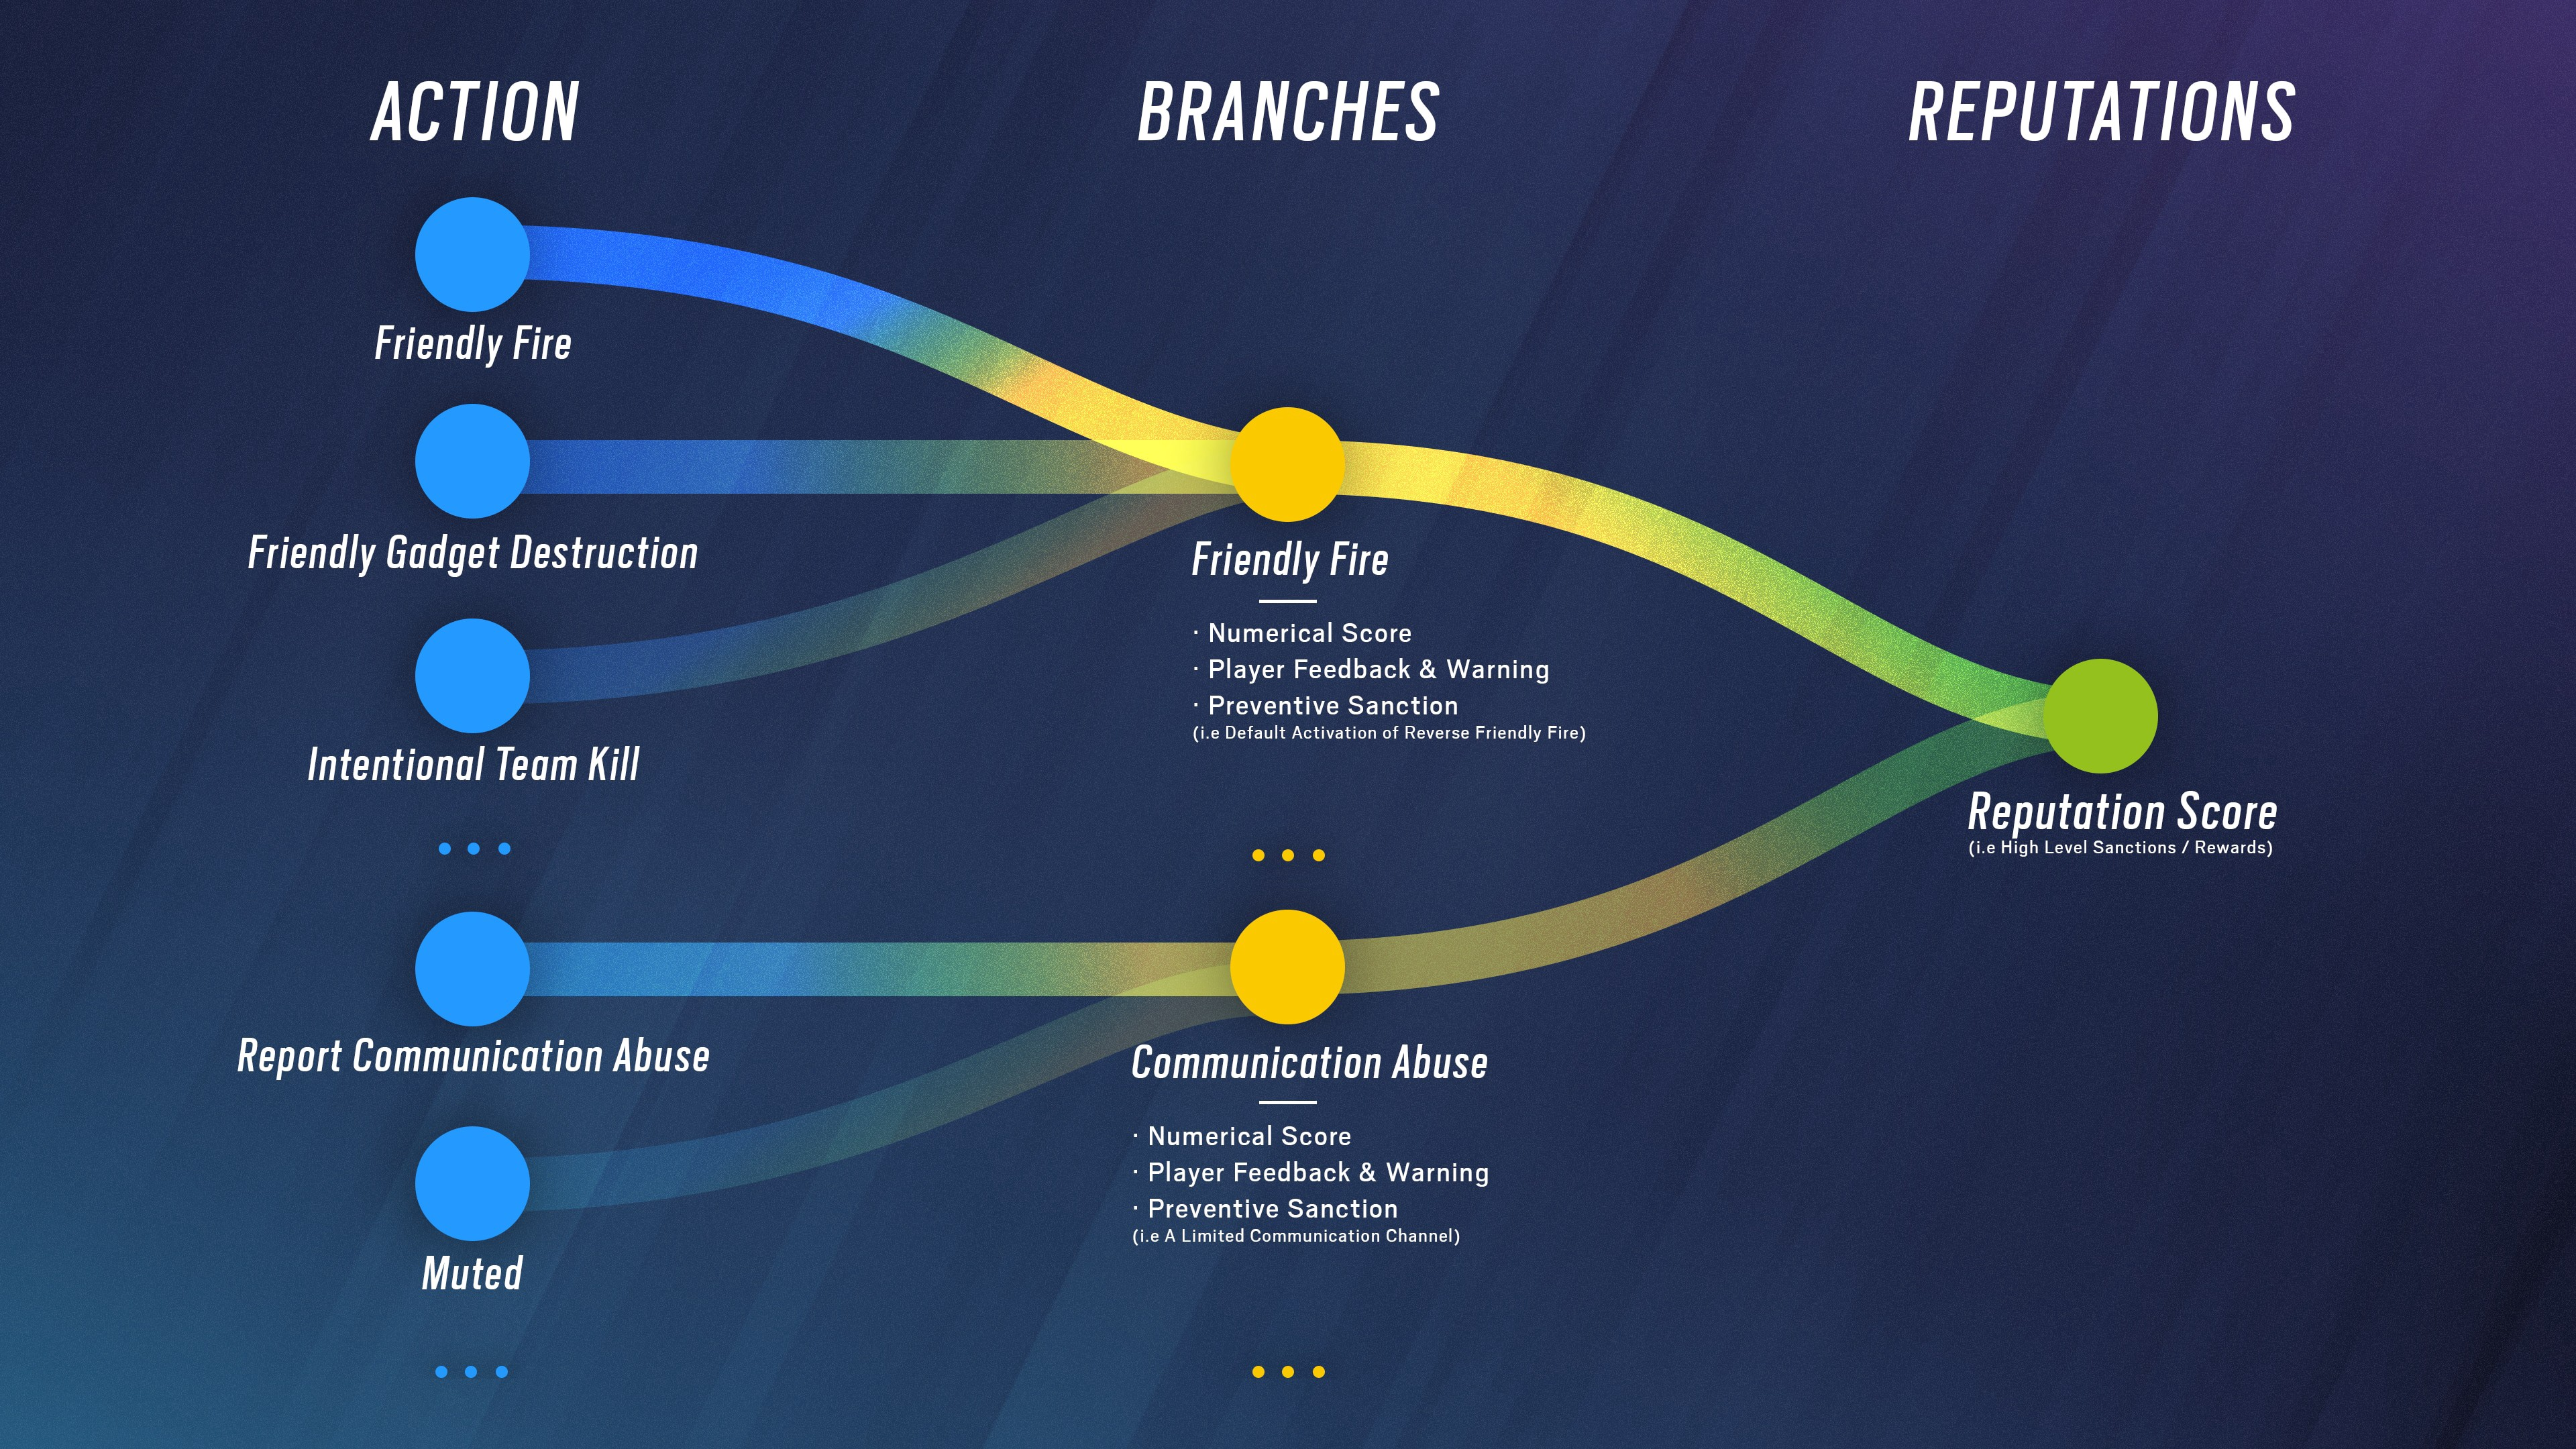 Actions and branches in the Reputation System.